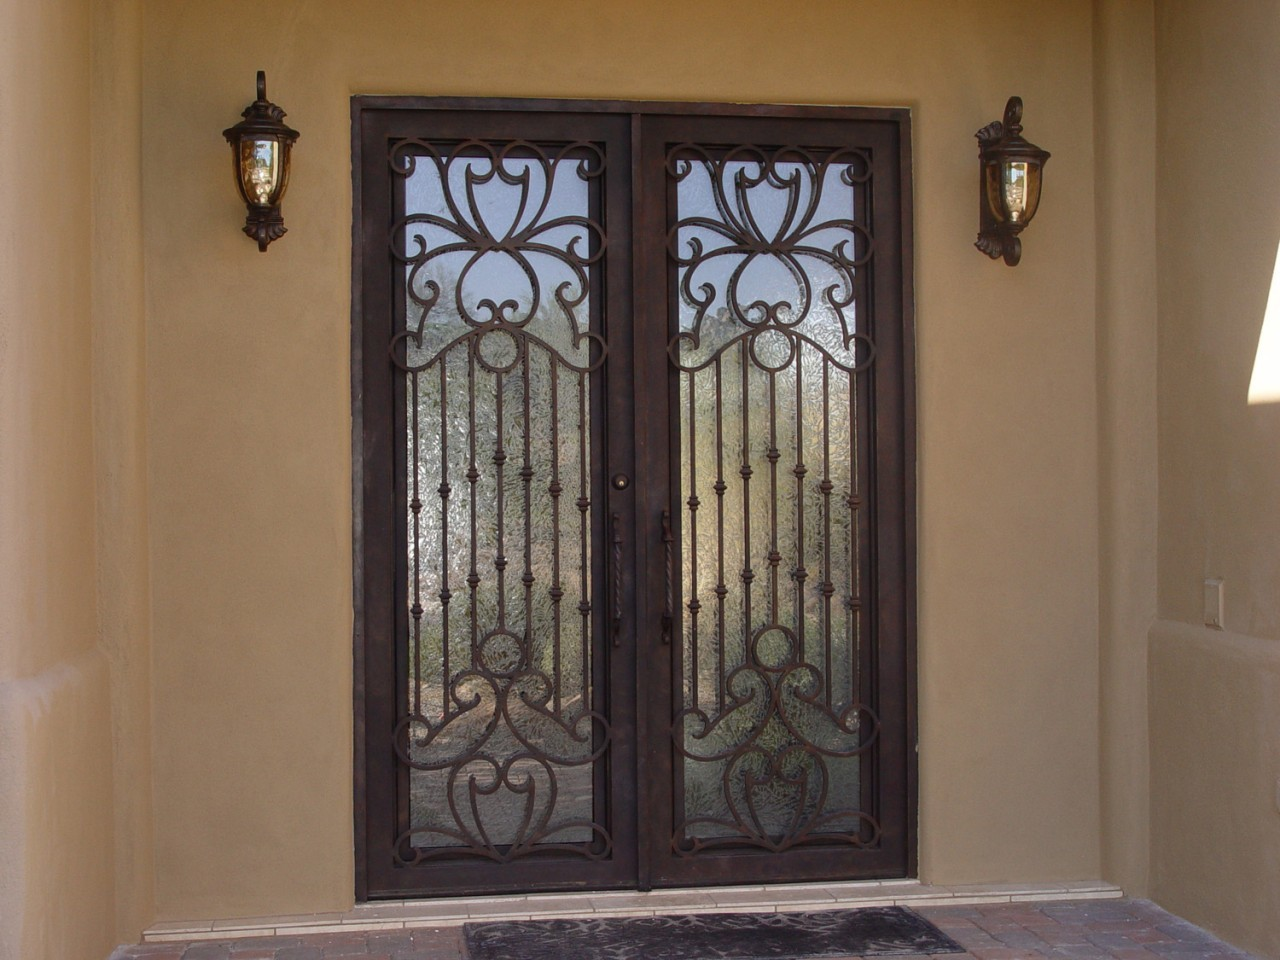 Appealing front door security screens brisbane ideas for Double entry storm doors